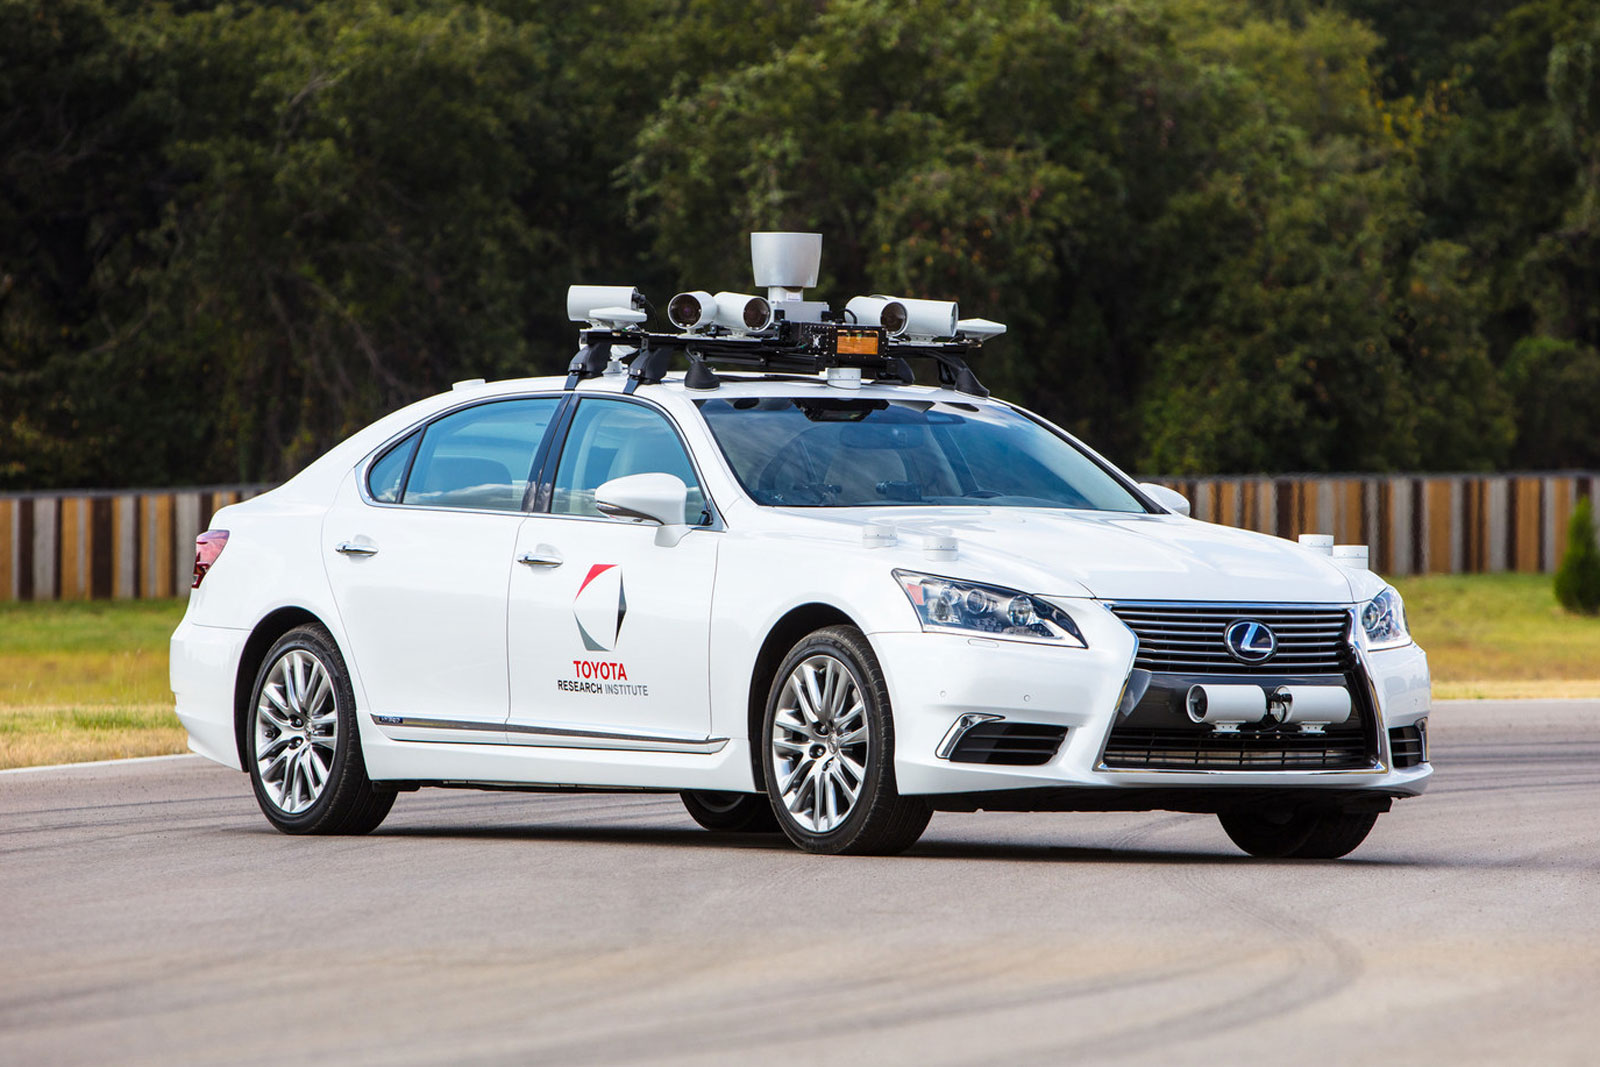 Toyota 39 S Latest Self Driving Car Is More Aware Of Its